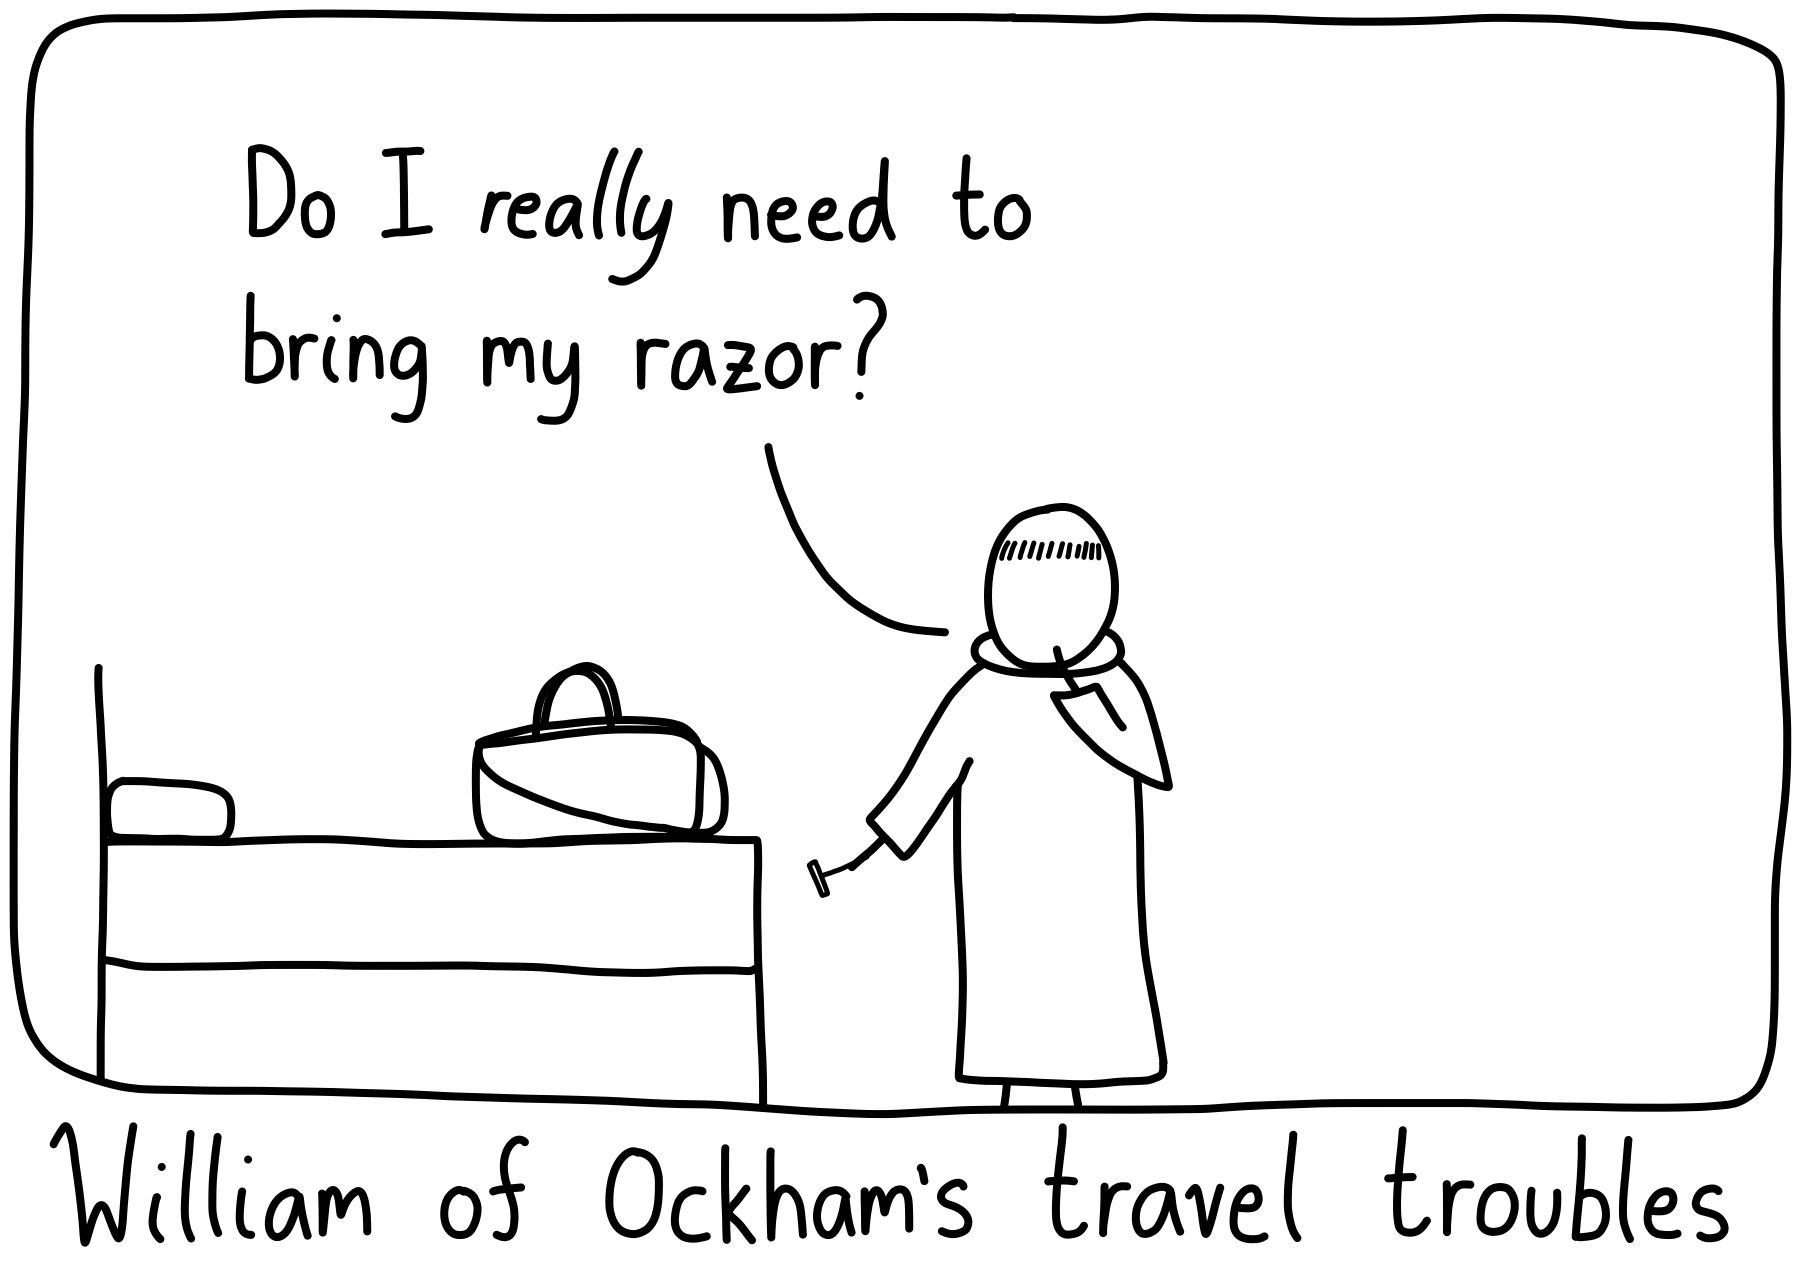 William of Okham decides whether to include his razor in his travel bag.